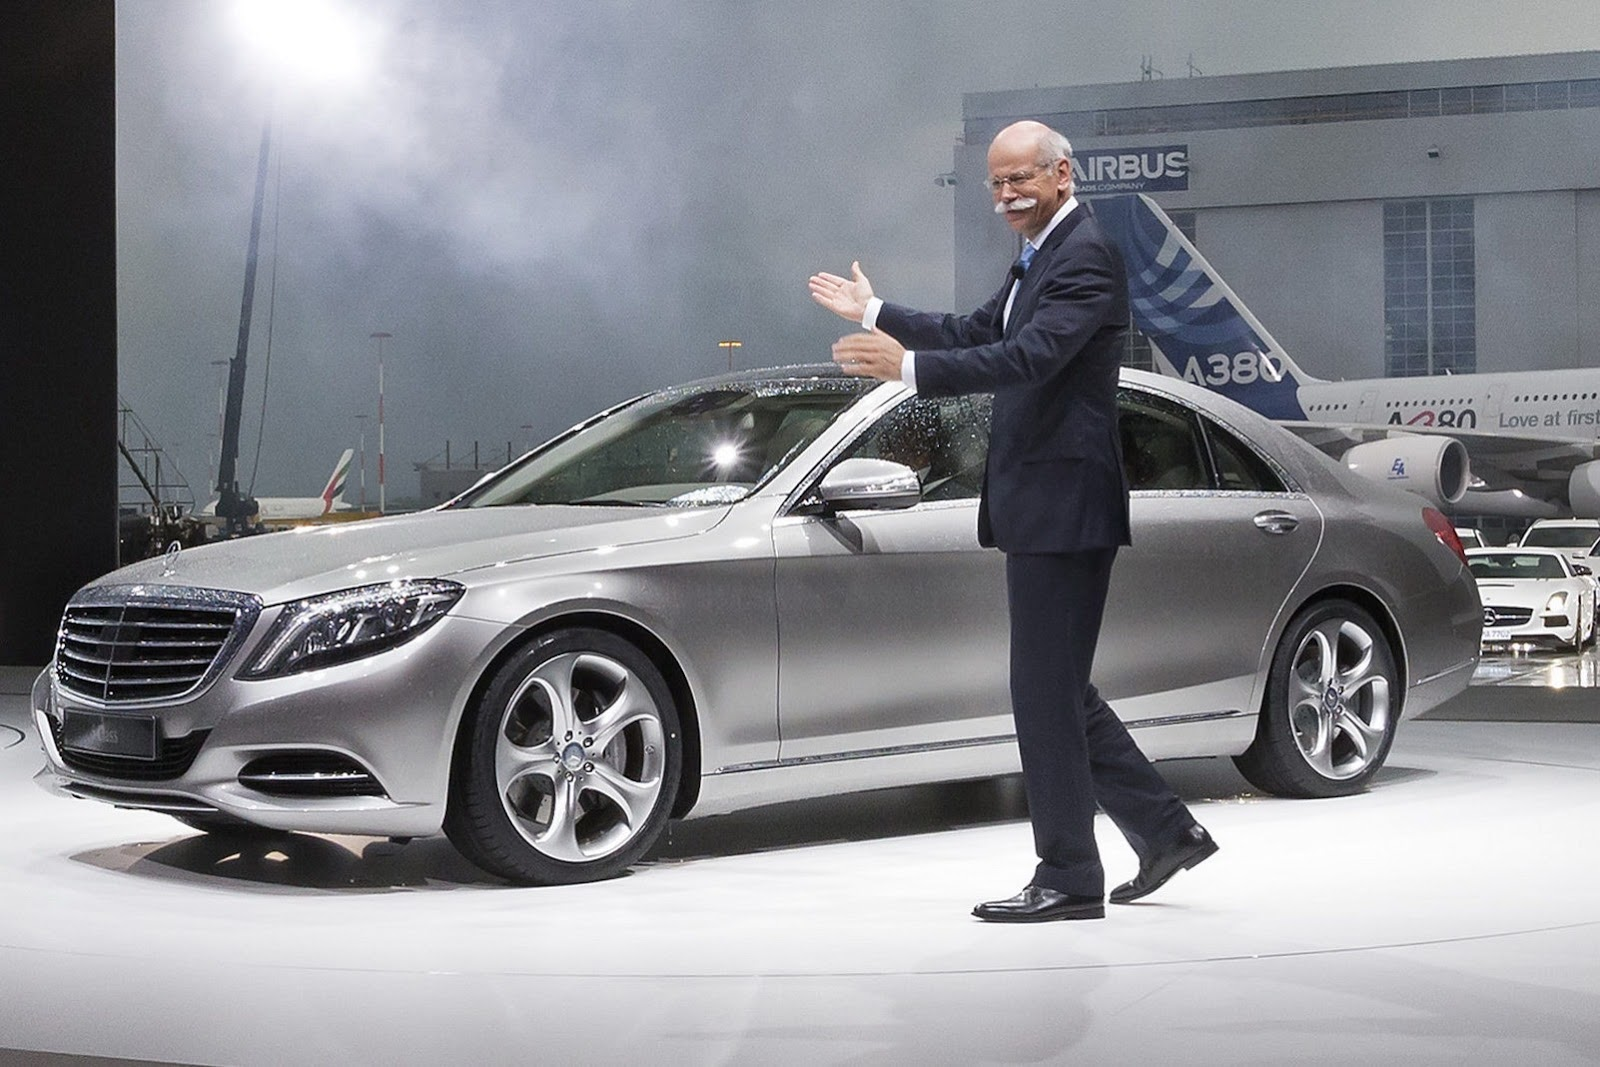 2014 Mercedes Benz S-Class Reveal Event - SMADE MEDIA (13)